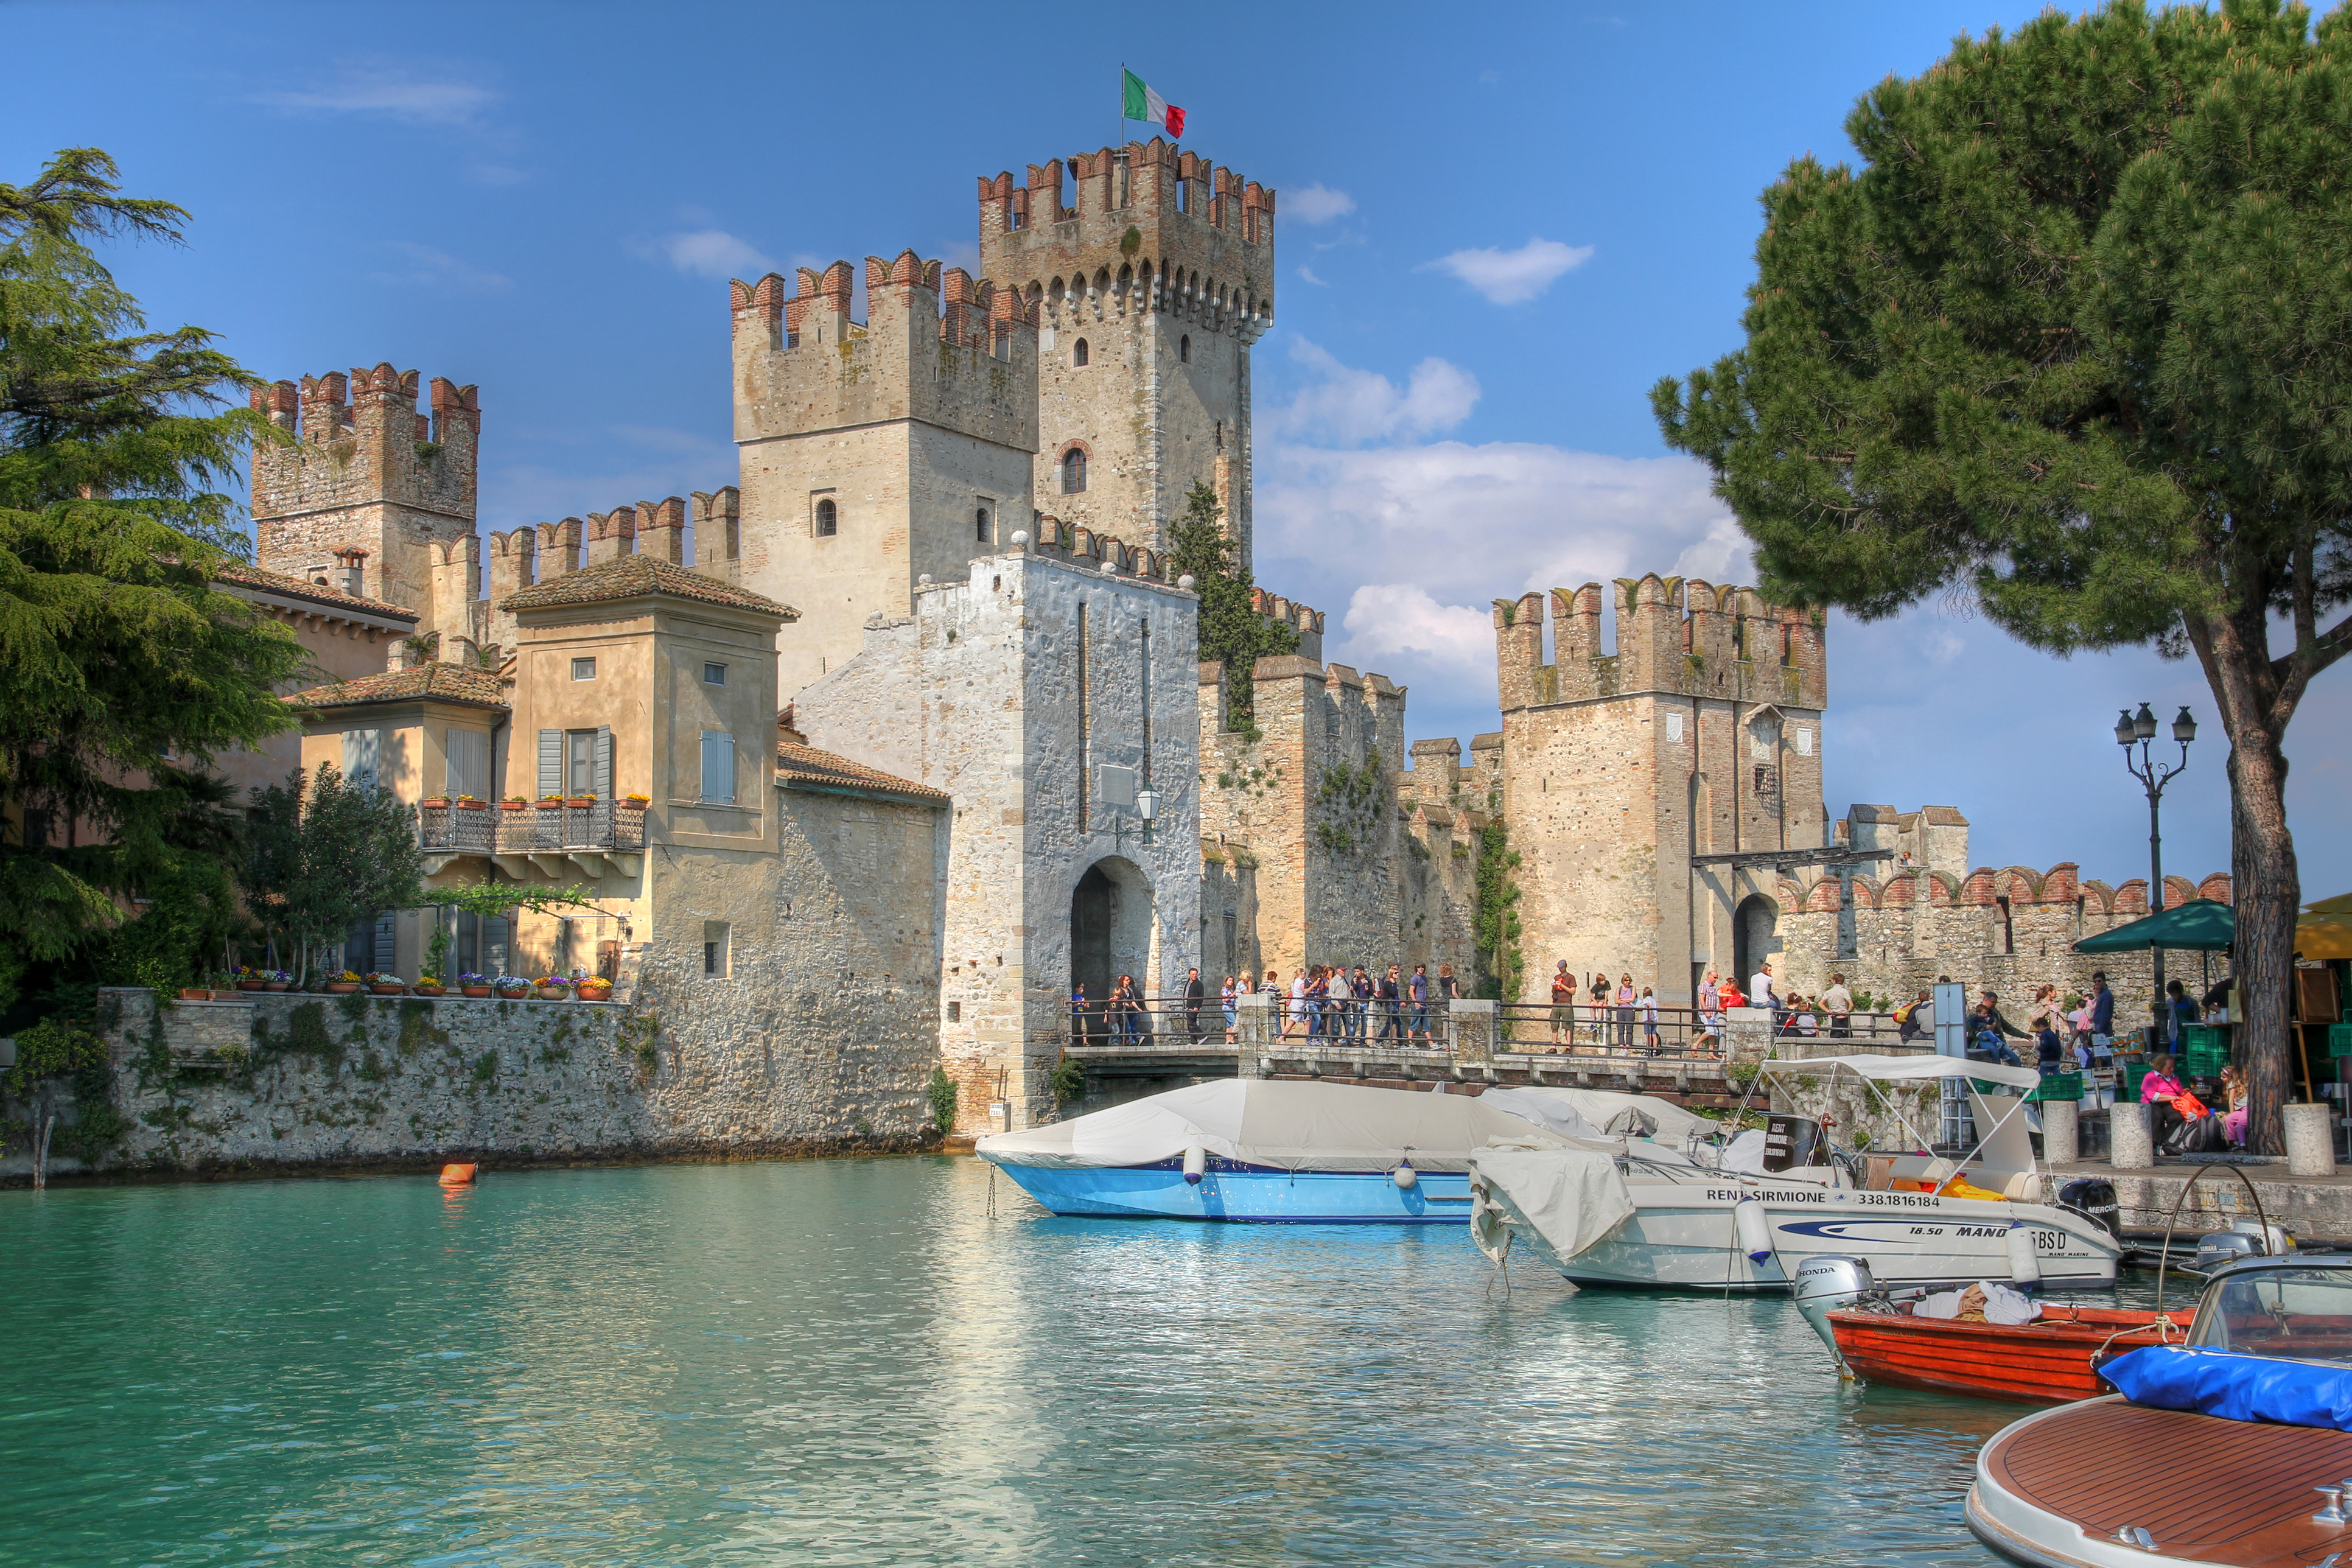 """Sirmione, Italy - April 27th, 2011 - Tourists visiting Scaliger Castle (Castello Scaligero) in Sirmione, on Lake Garda, Italy during spring break."""